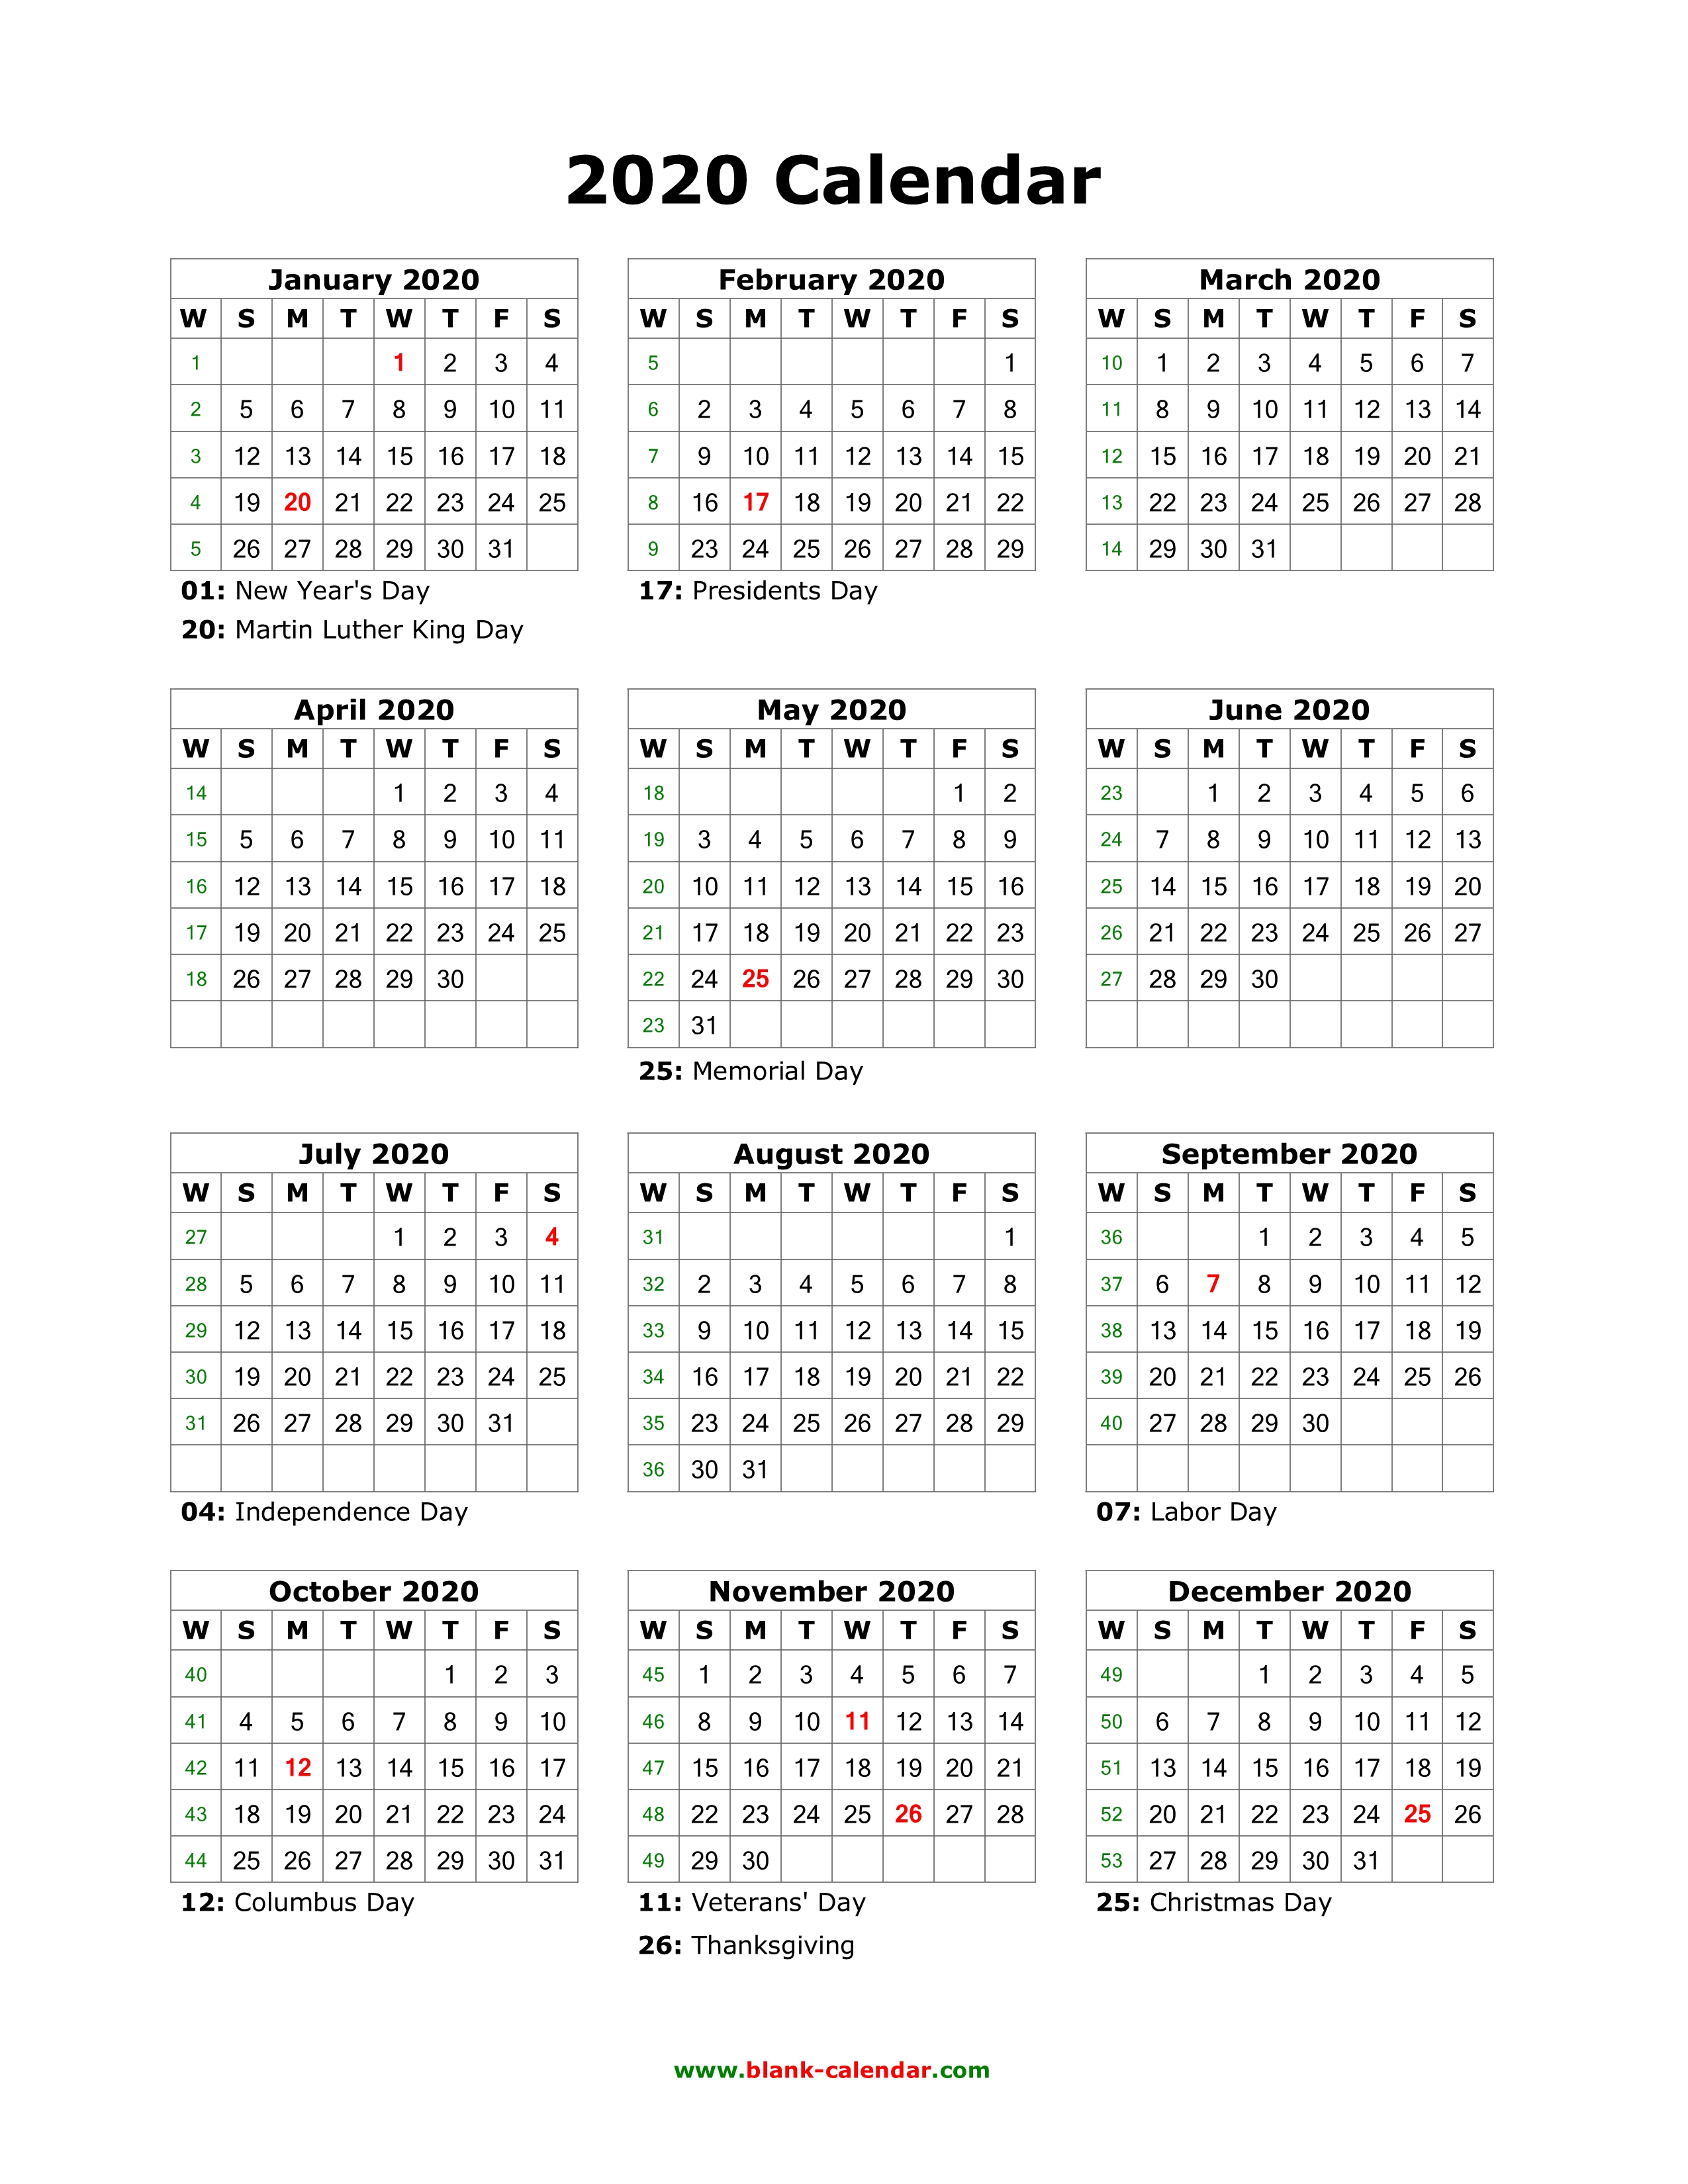 2020 Calendar With Holidays | Calendar Printable Free